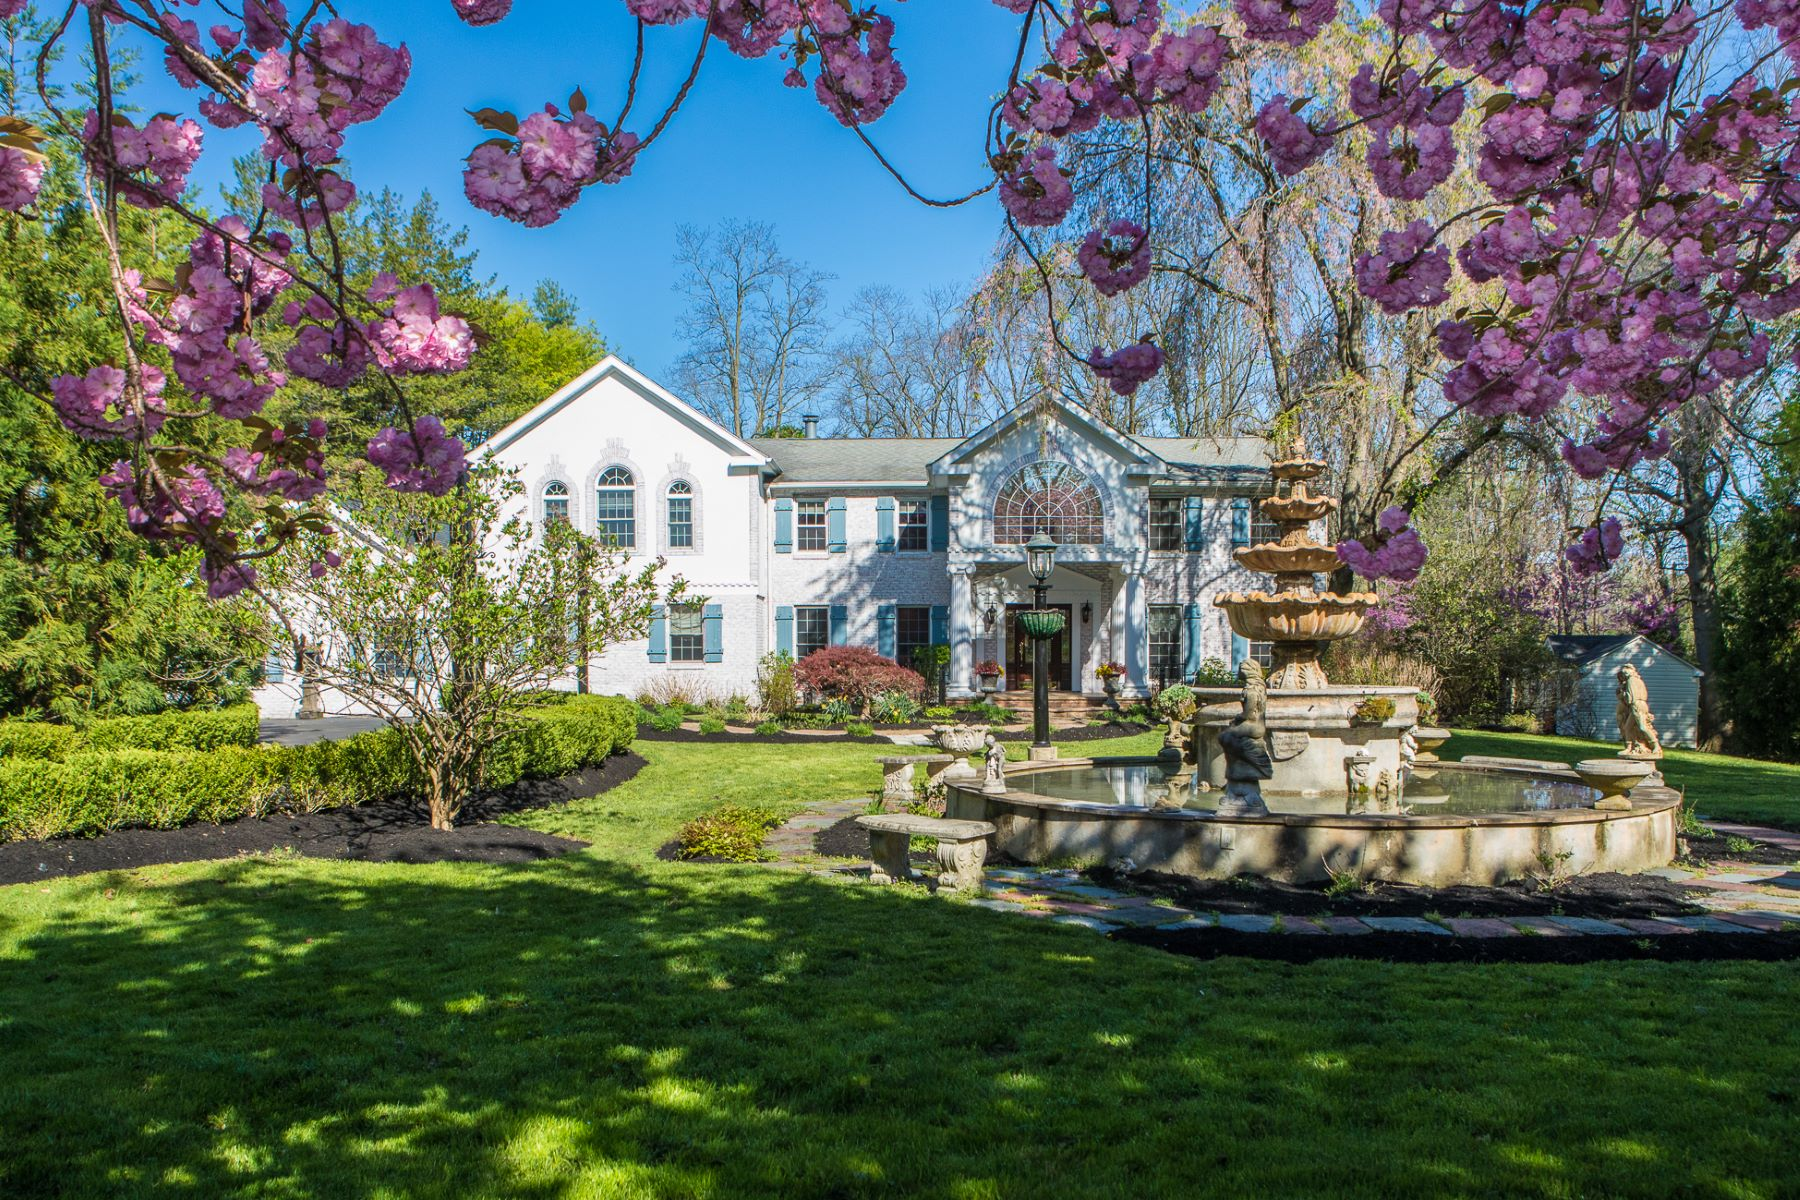 Property for Sale at Old World Glamour and Profound Privacy 3735 Lawrenceville Princeton Road, Princeton, New Jersey 08540 United States